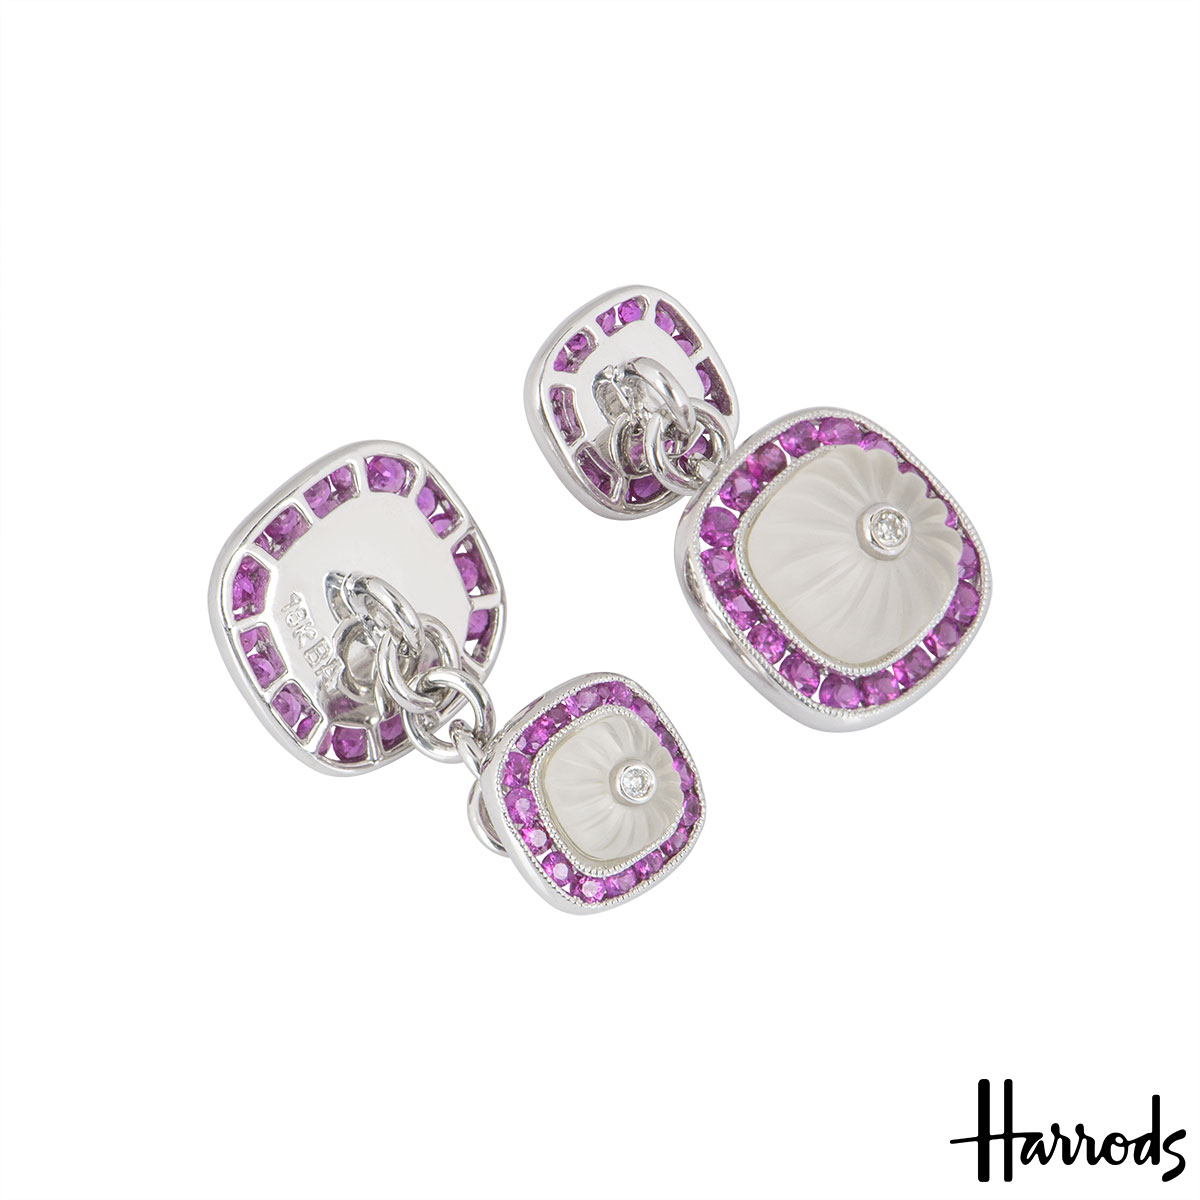 Harrods White Gold Diamond & Multi-Gem Cufflinks